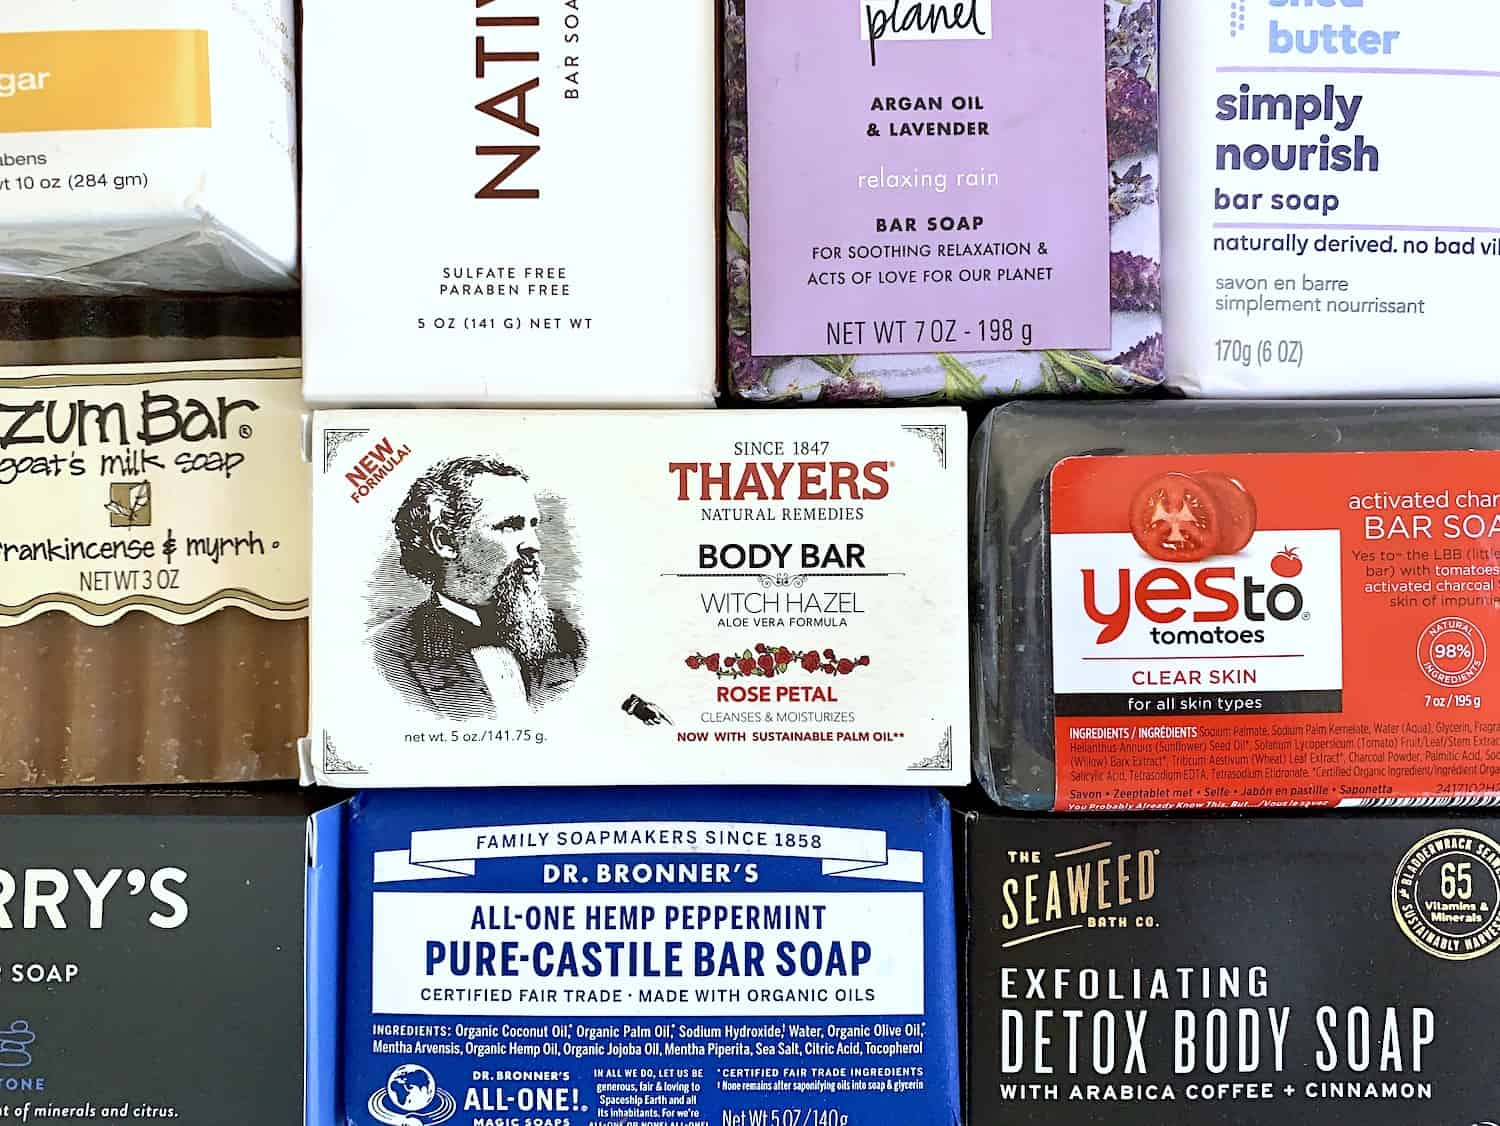 Not Your Average Drugstore Bar Soaps